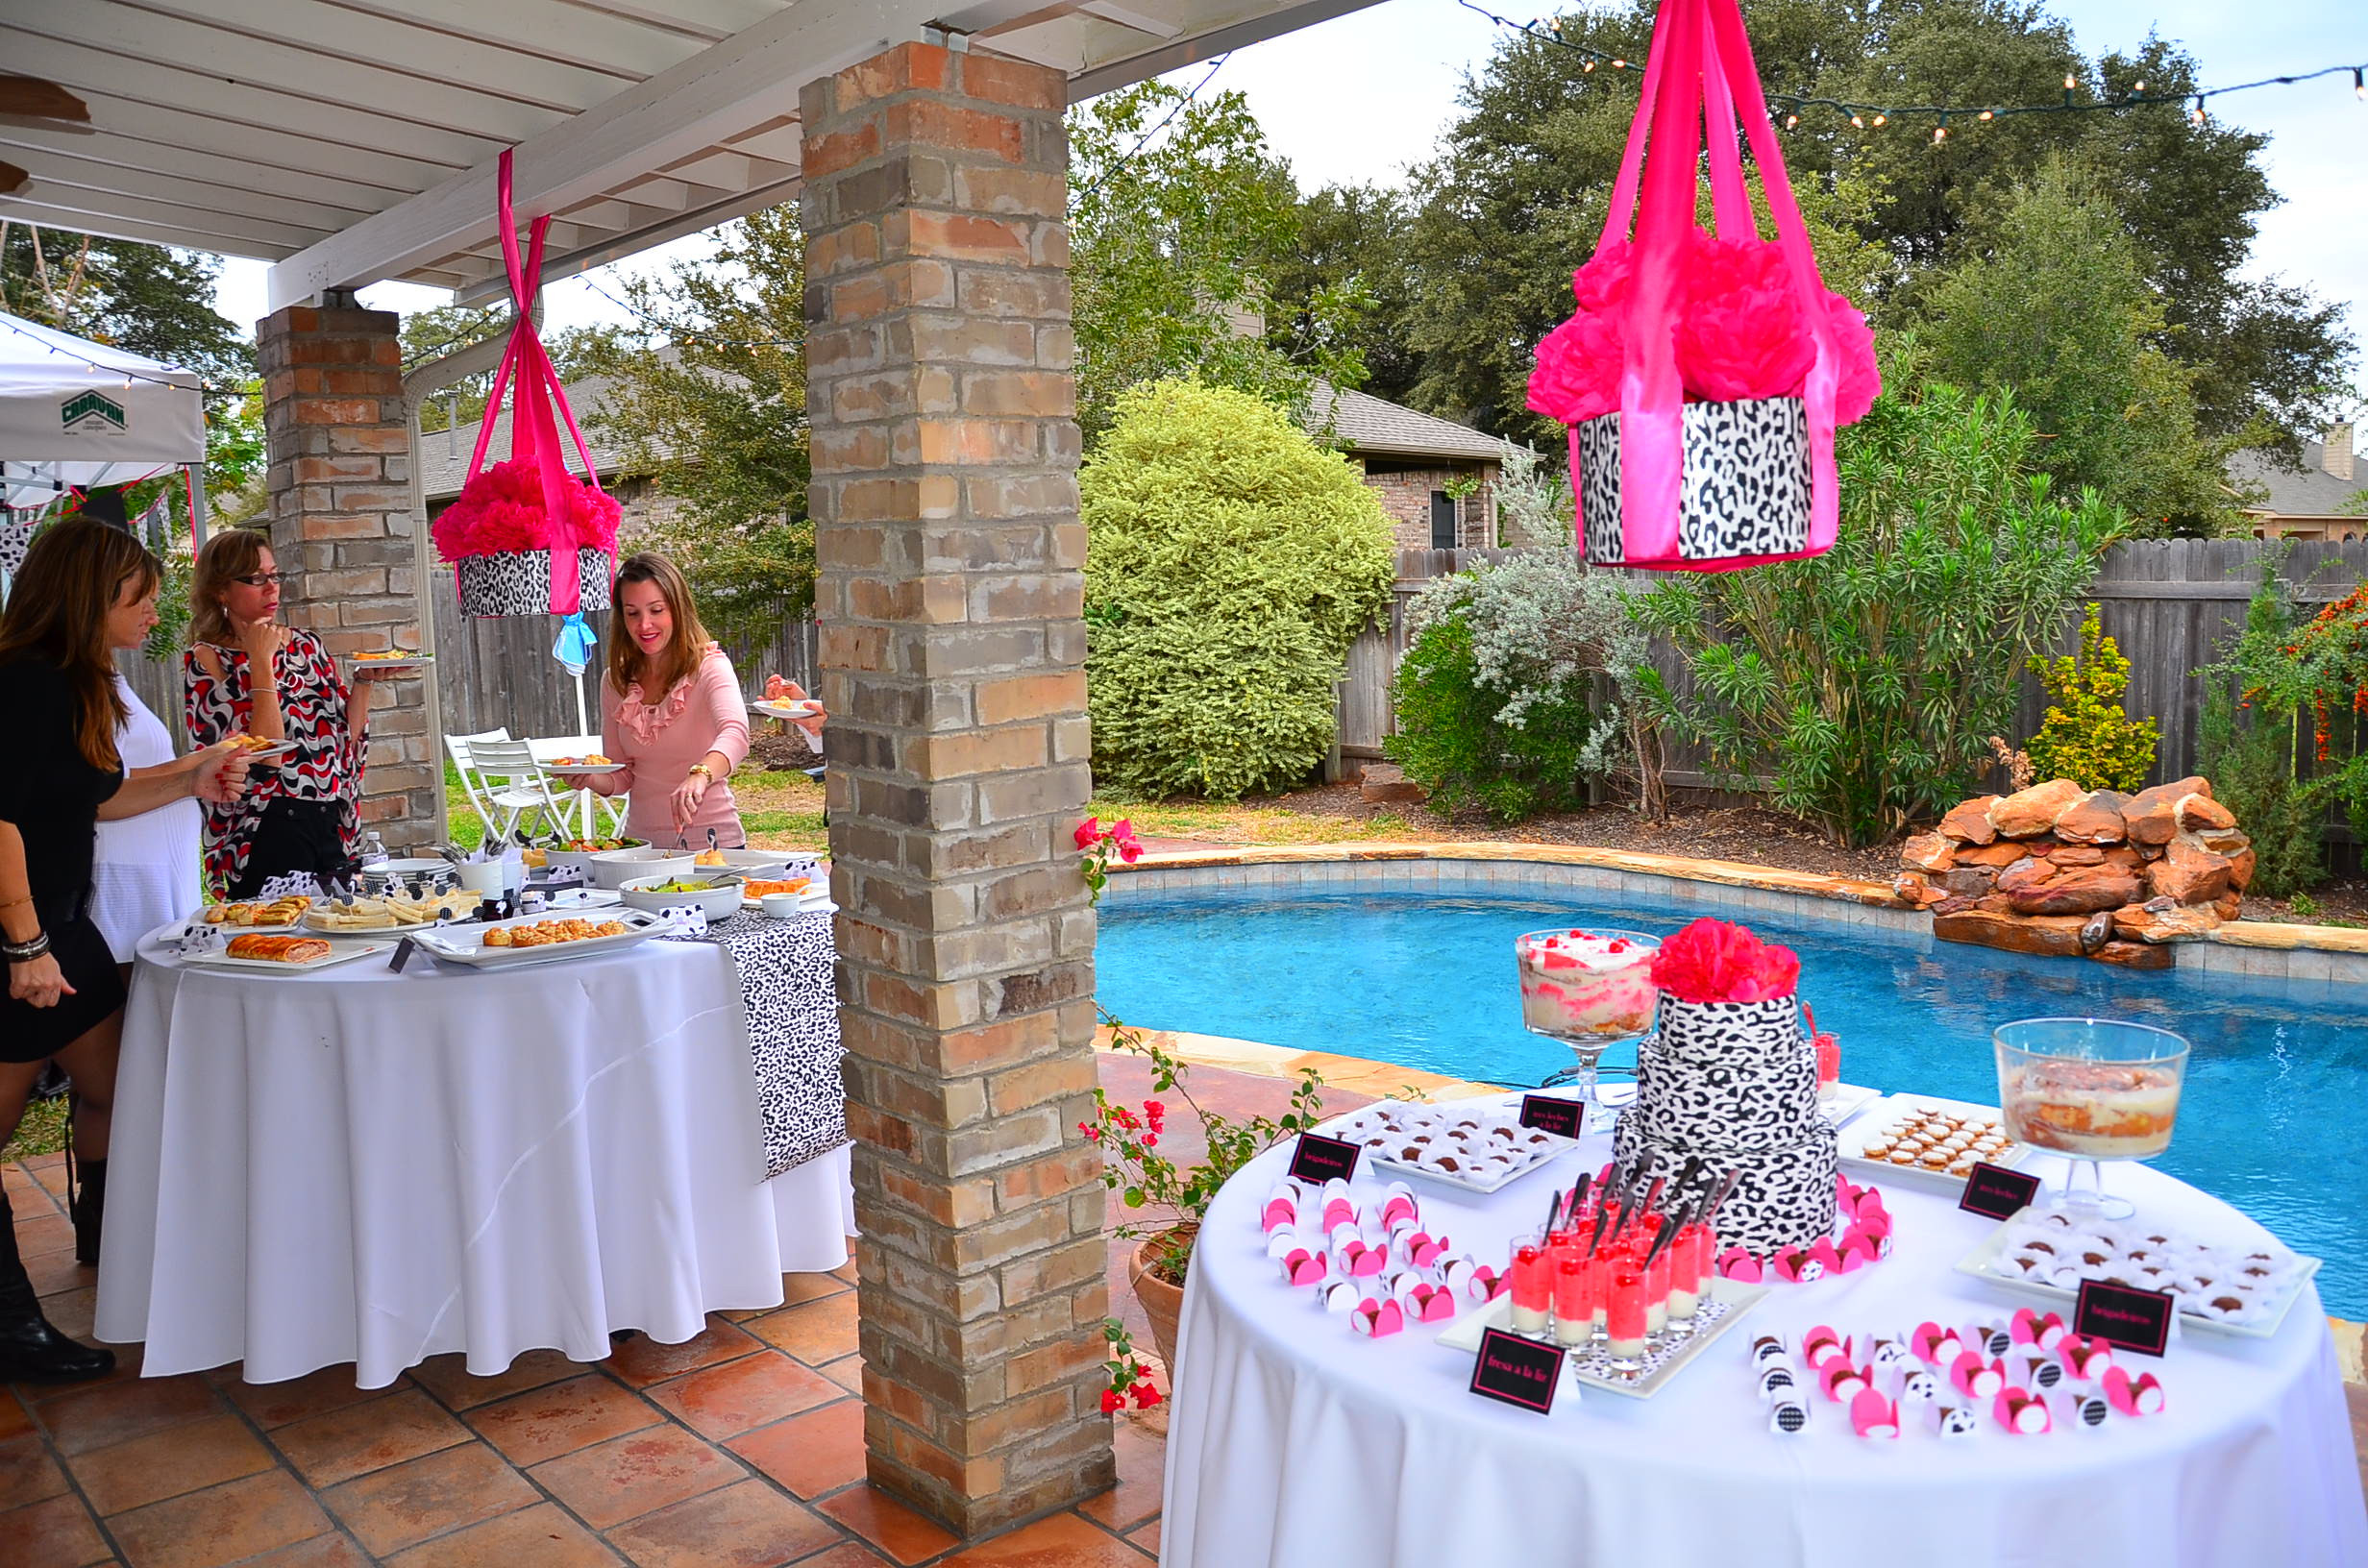 Pool Party Baby Shower Ideas  dessert table